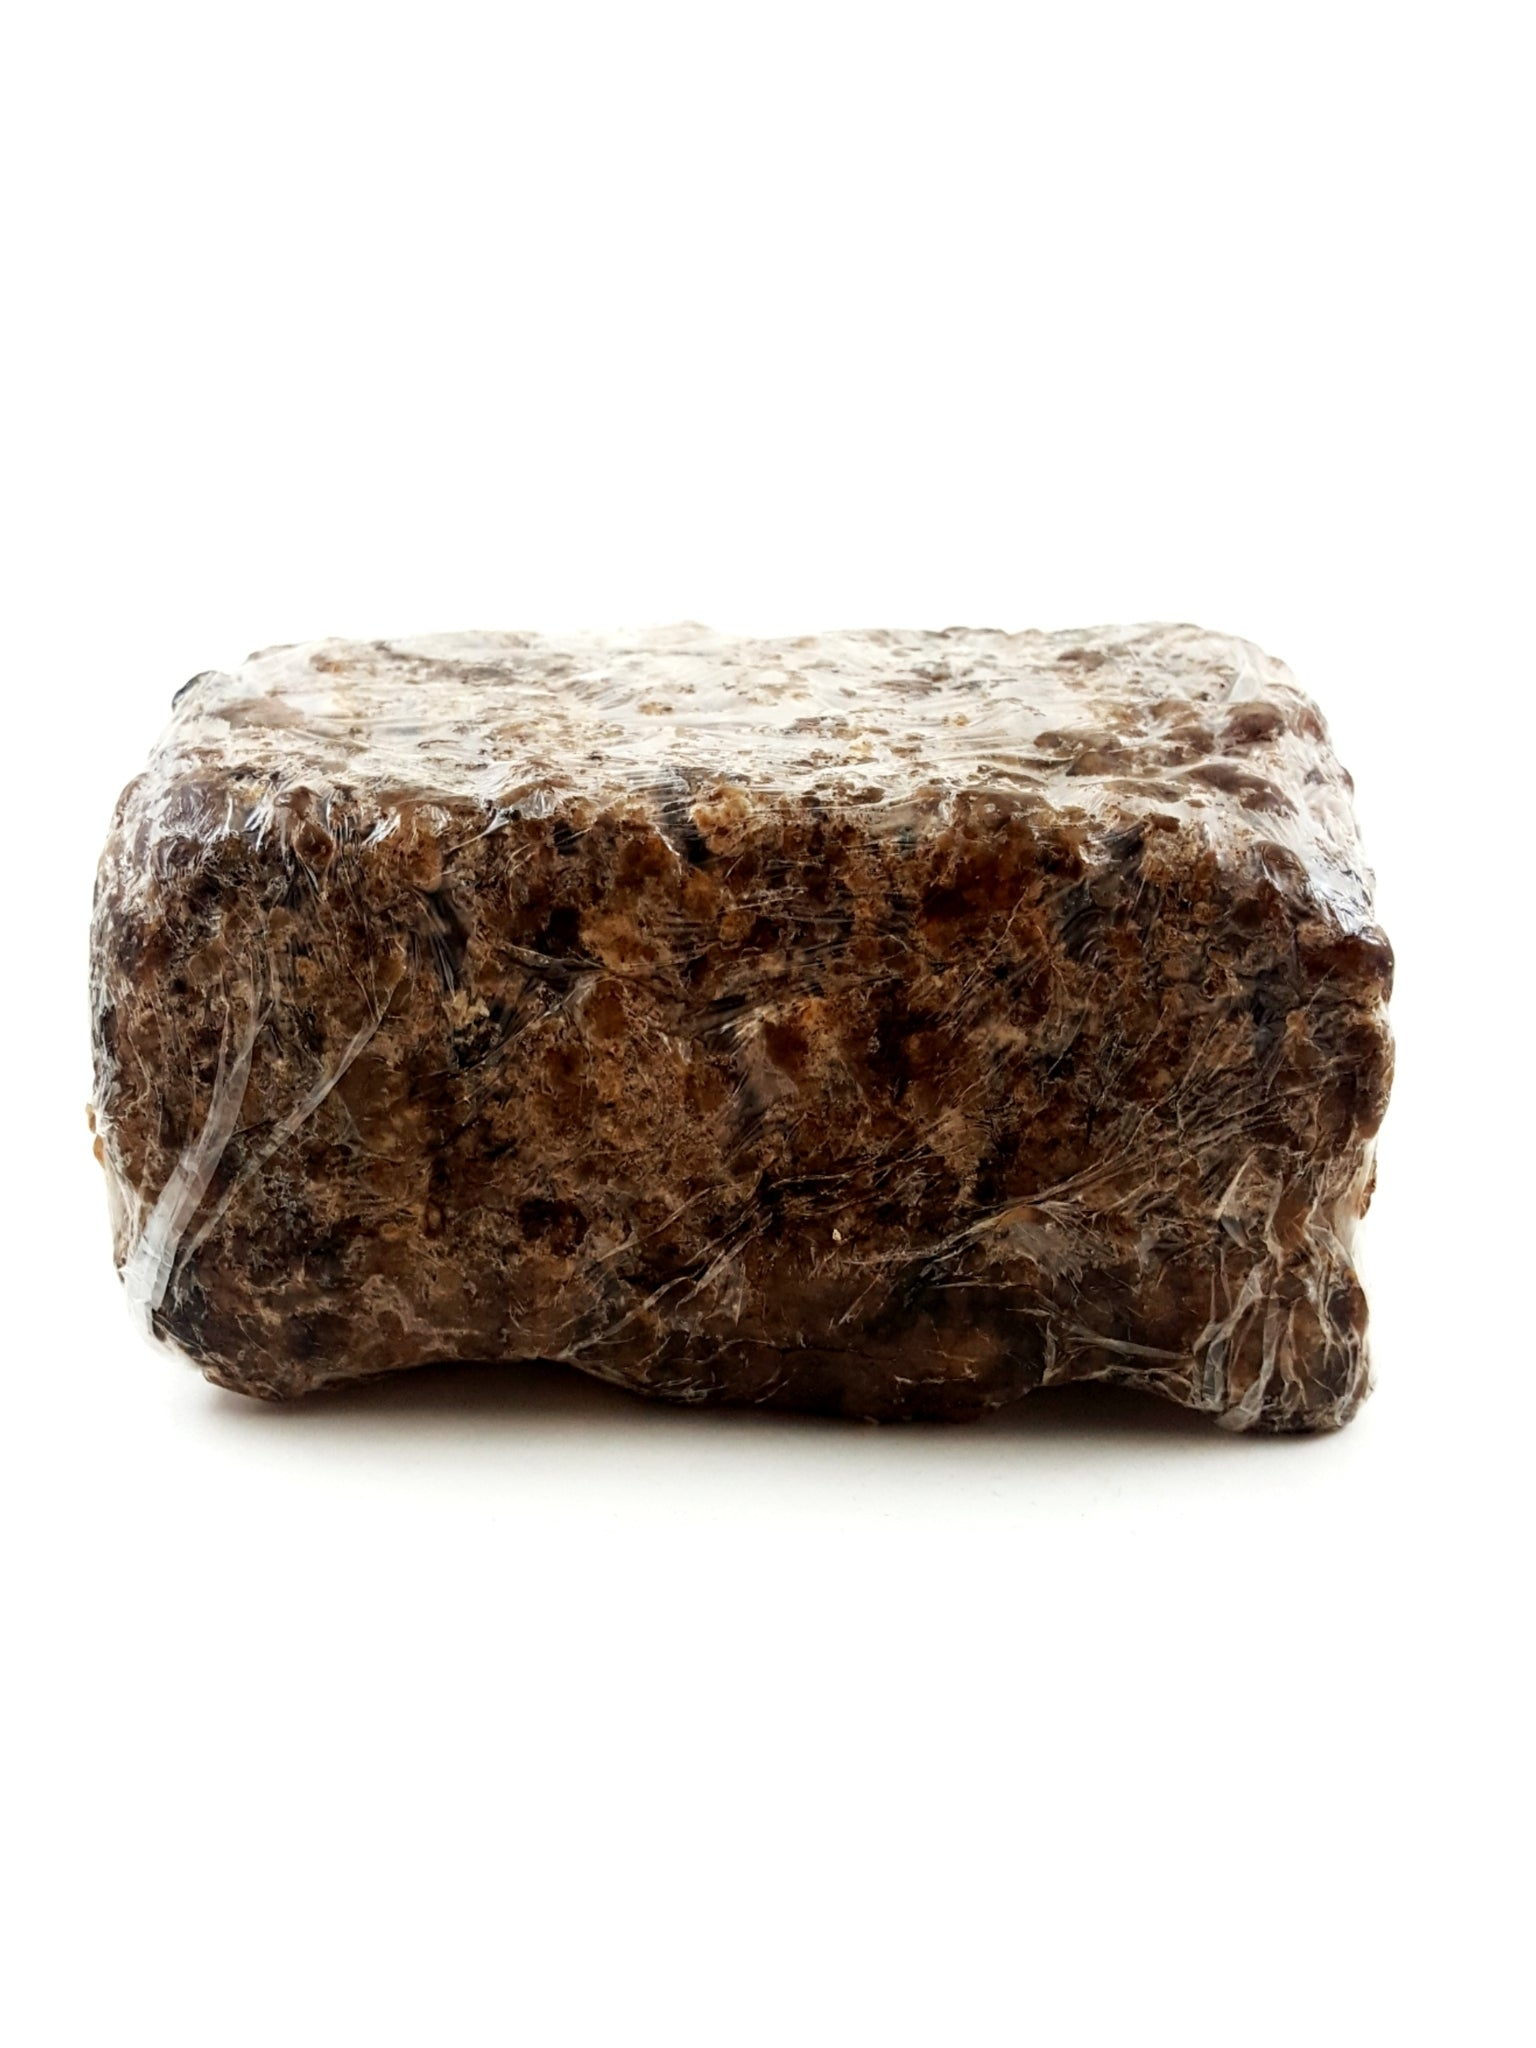 Raw African Black Soap for Healthier Skin and Hair 1lb